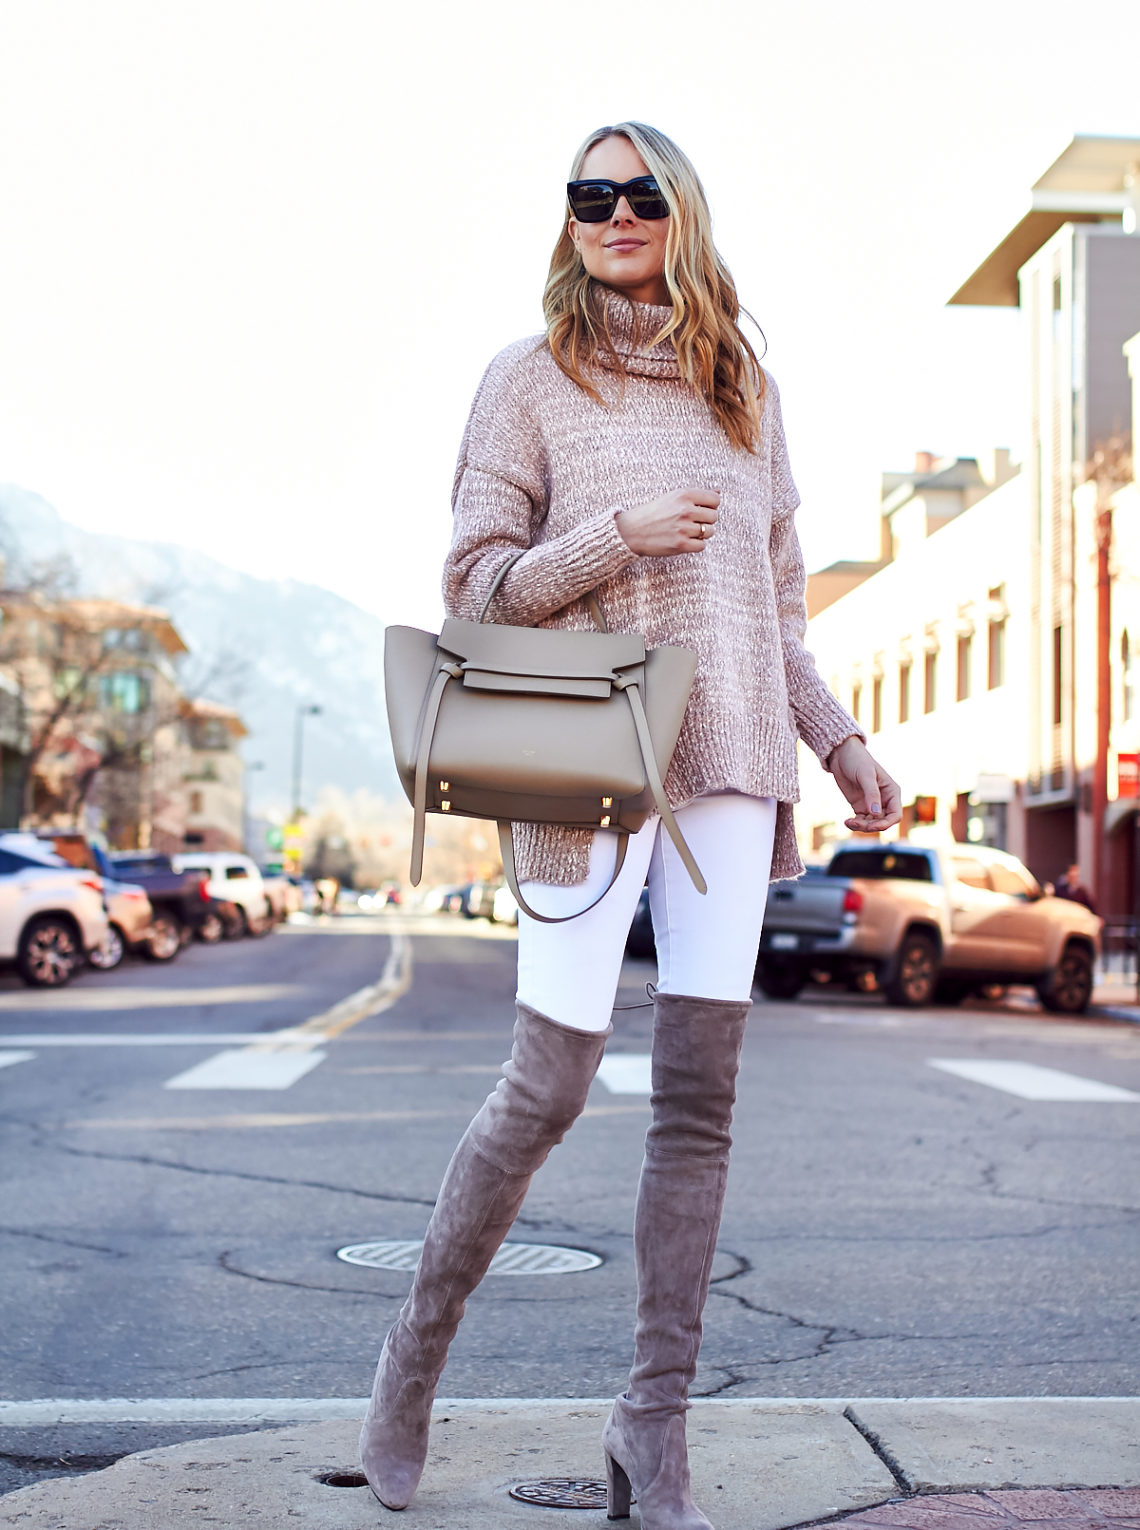 Winter Outfit, Stuart Weitzman Over the Knee Boots, Celine Tie Belt Bag, Blush Turtleneck Sweater